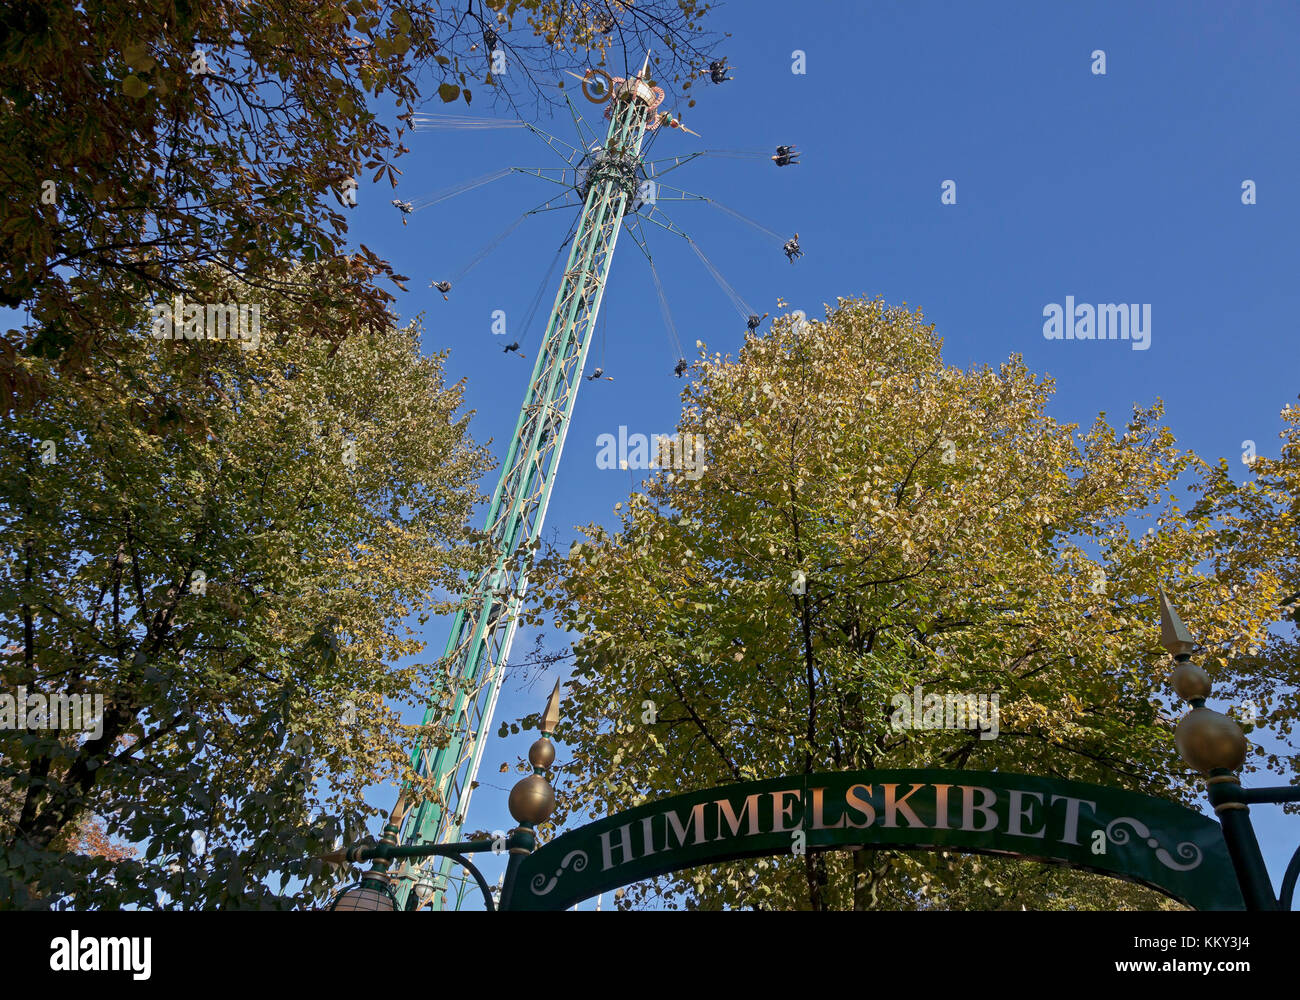 The Star Flyer, or Himmelskibet, in the Tivoli Gardens in the Halloween season. With 80 m the highest carousel in - Stock Image